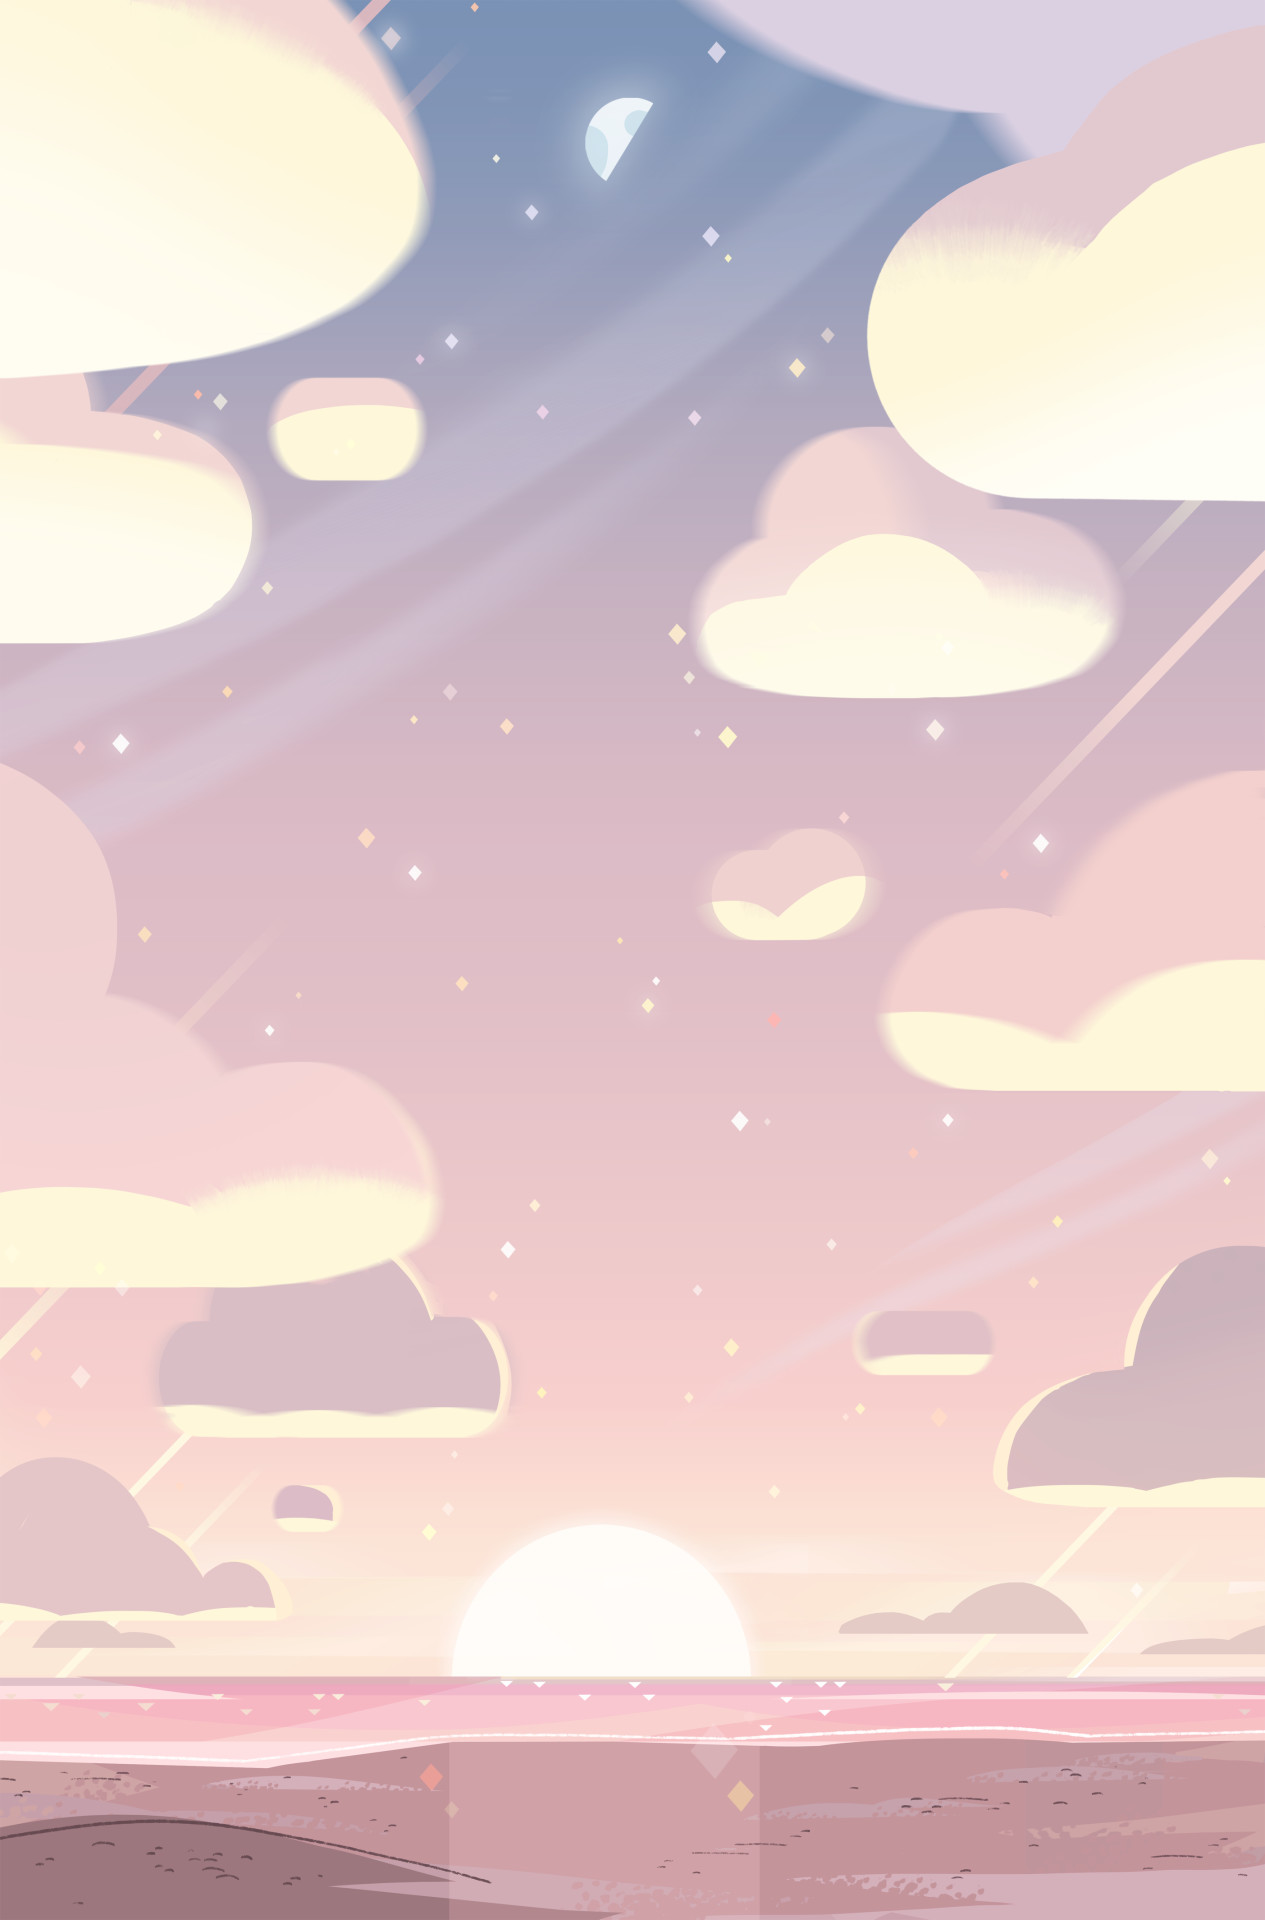 1265x1920 Steven Crewniverse Behind-The-Scenes Universe: A selection of Backgrounds from the